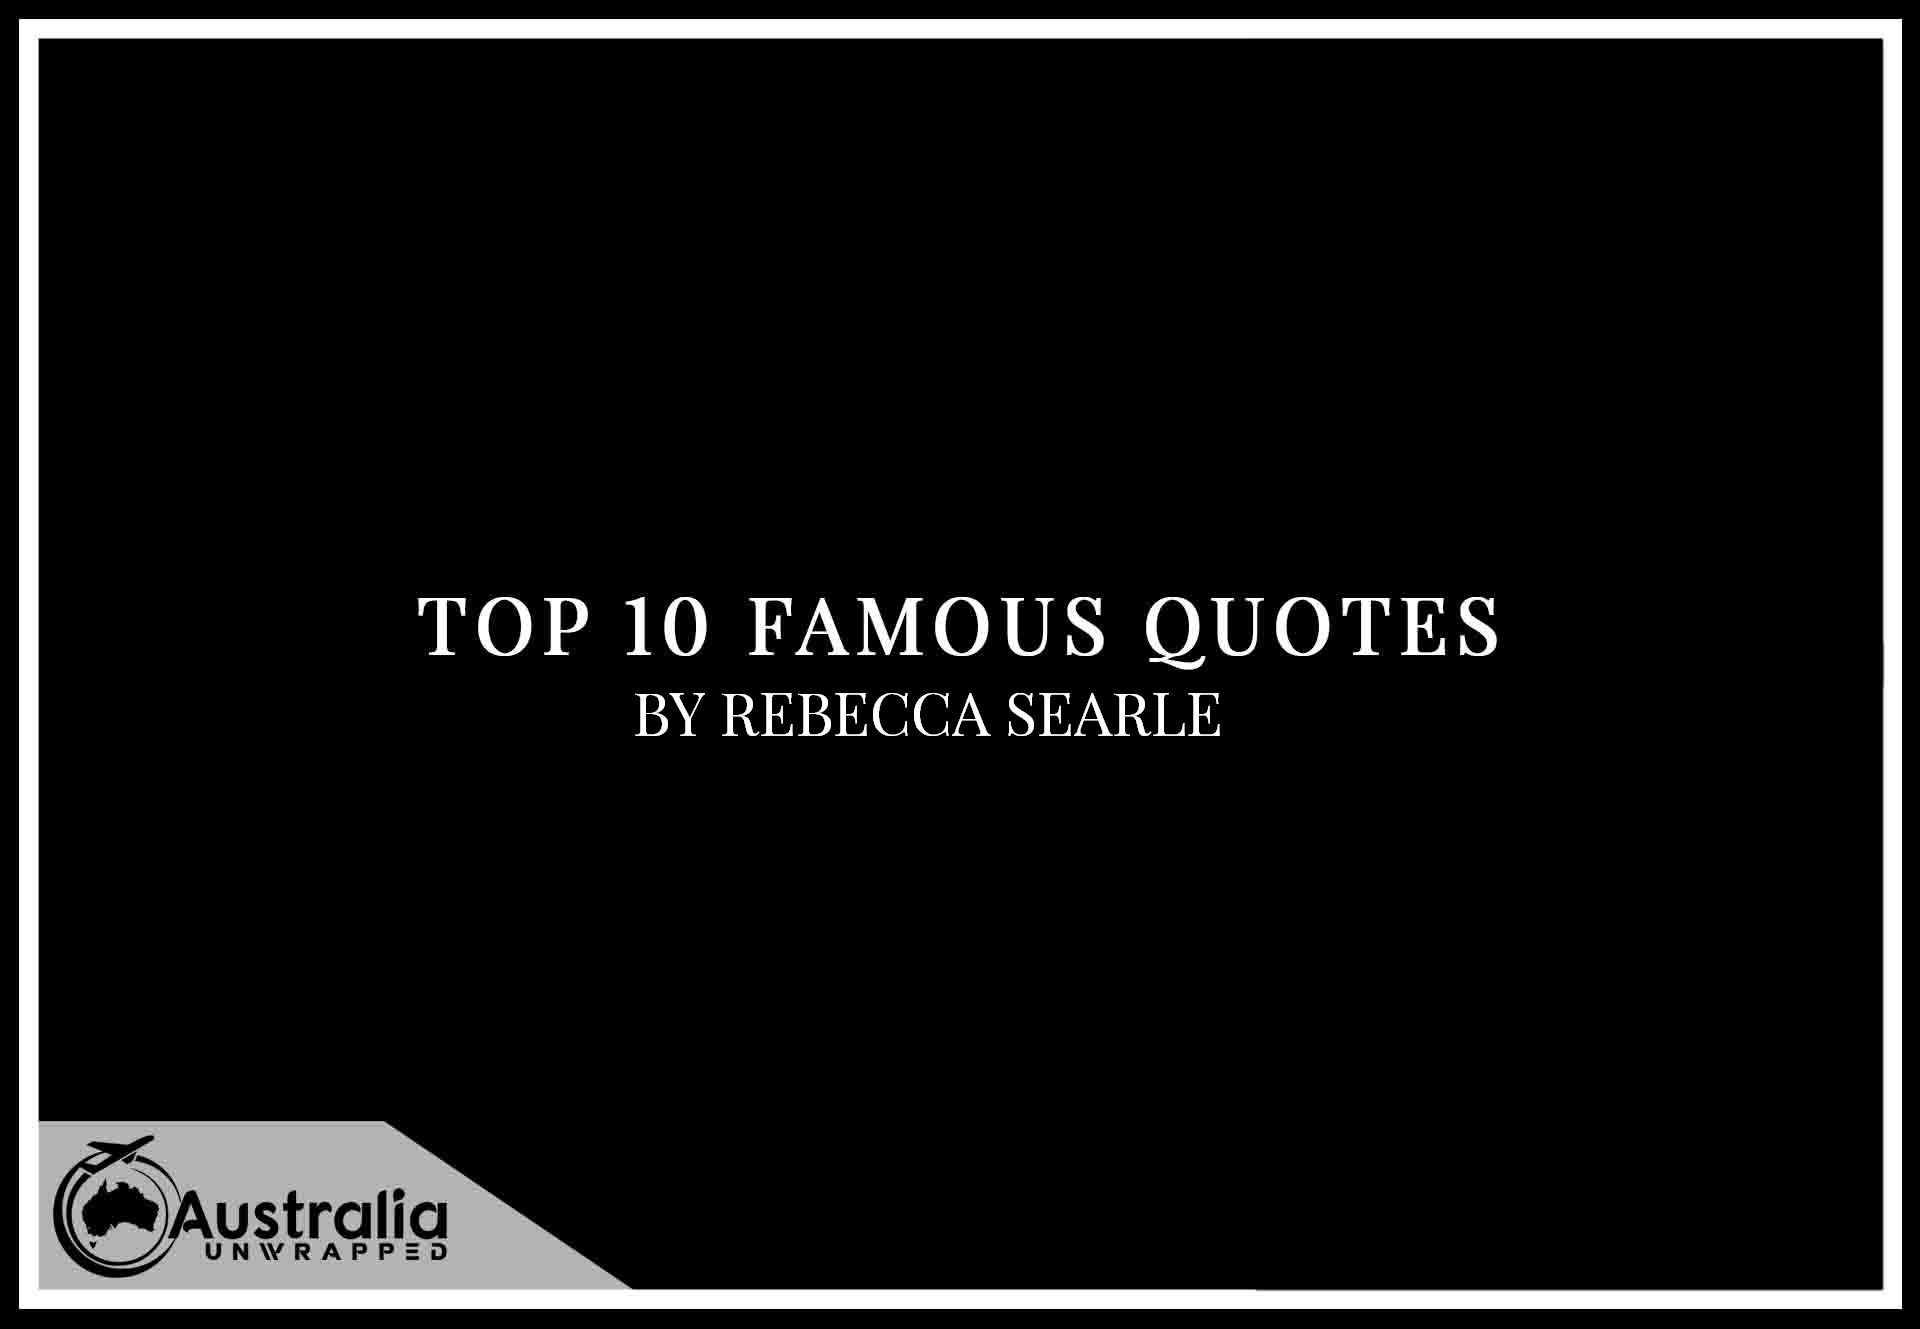 Top 10 Famous Quotes by Author Rebecca Serle